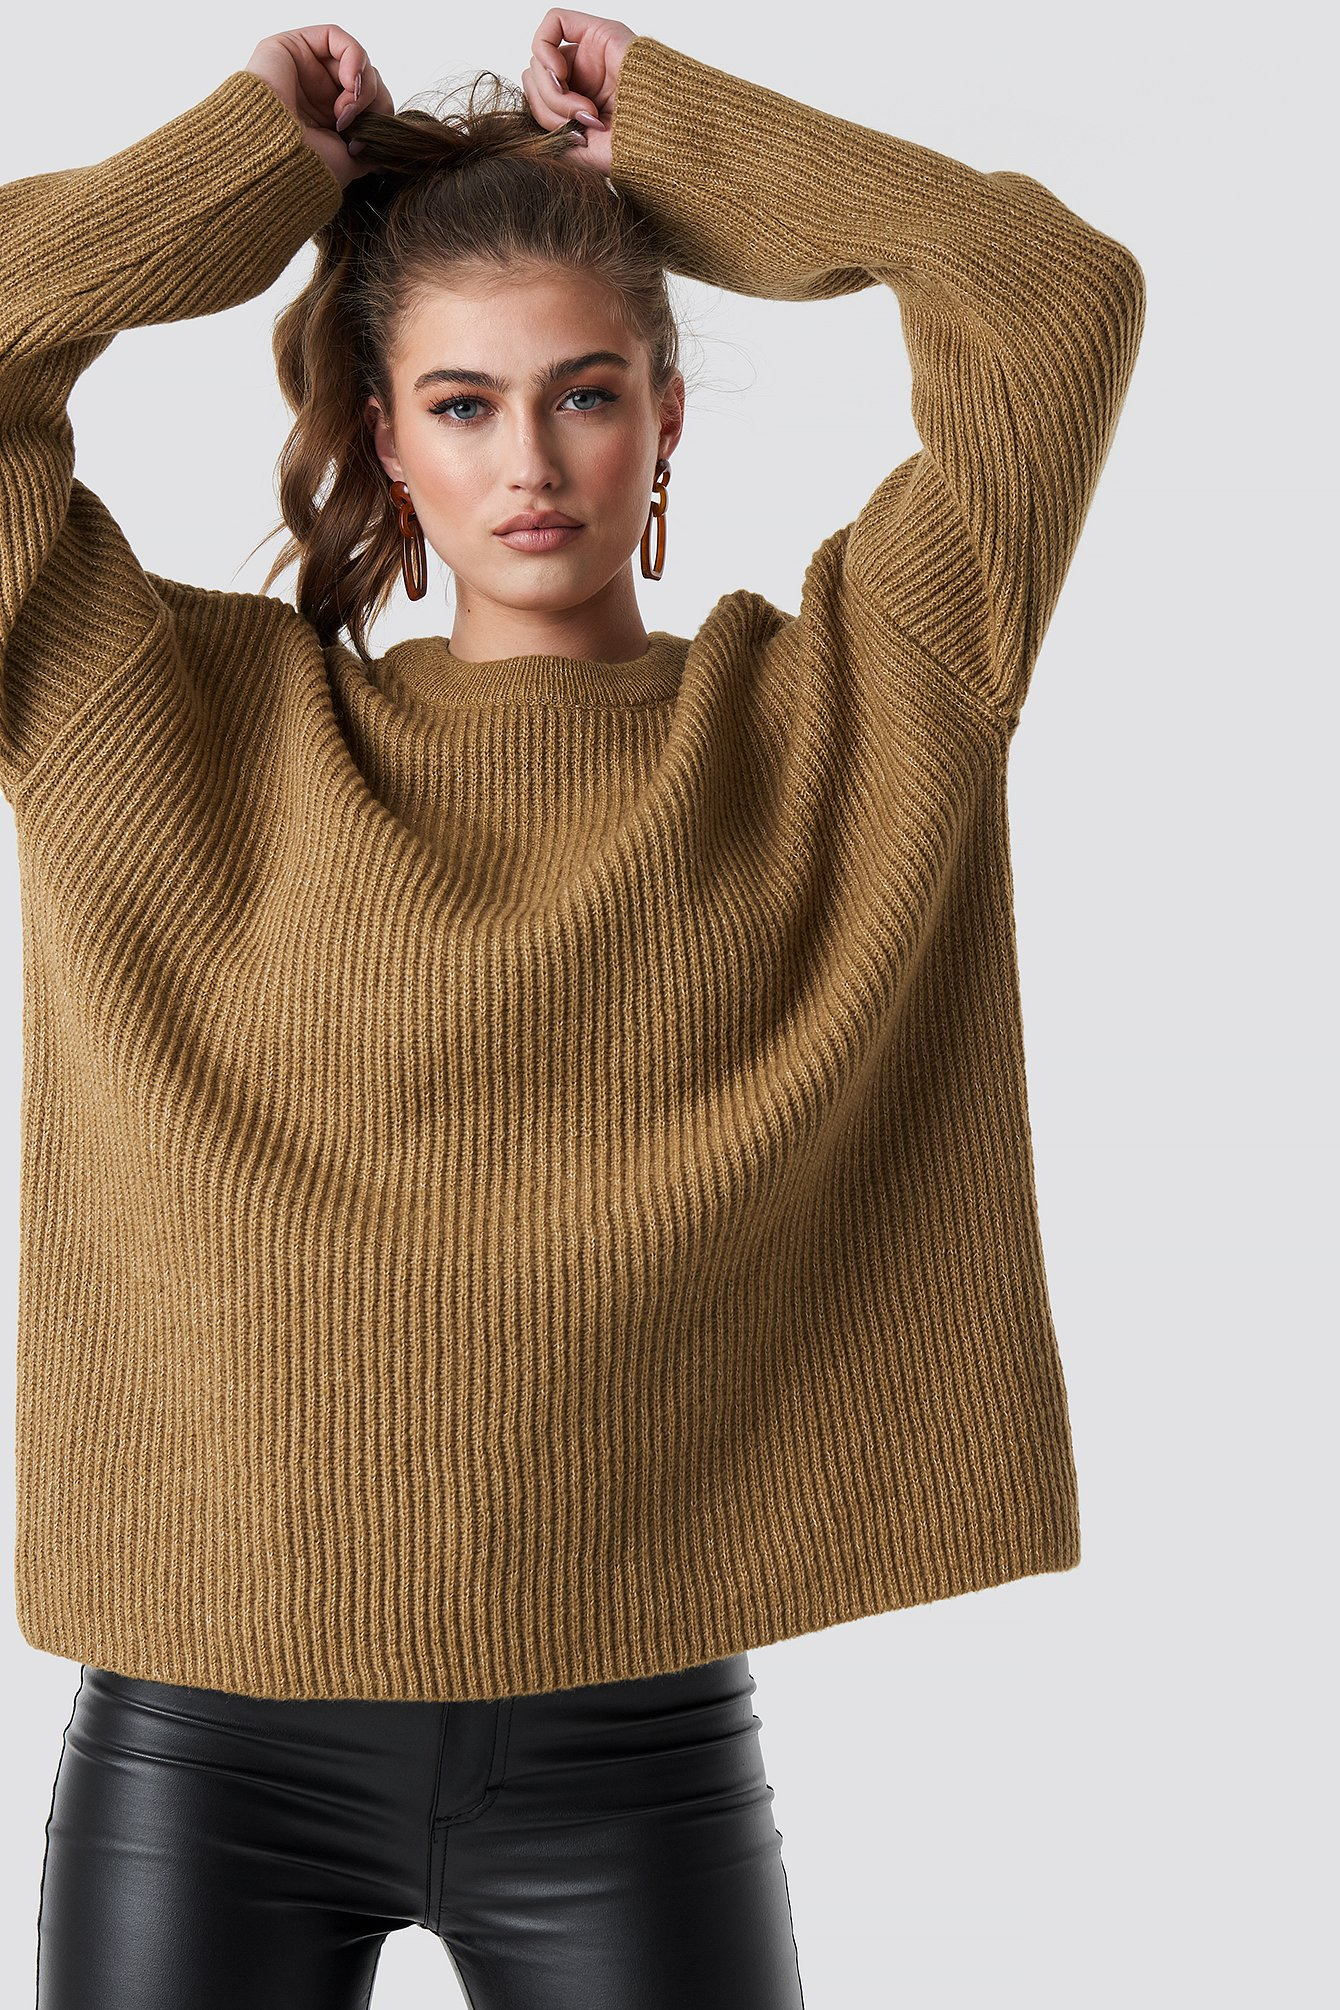 statement by na-kd influencers -  Katarina Juric Knitted Sweater - Beige